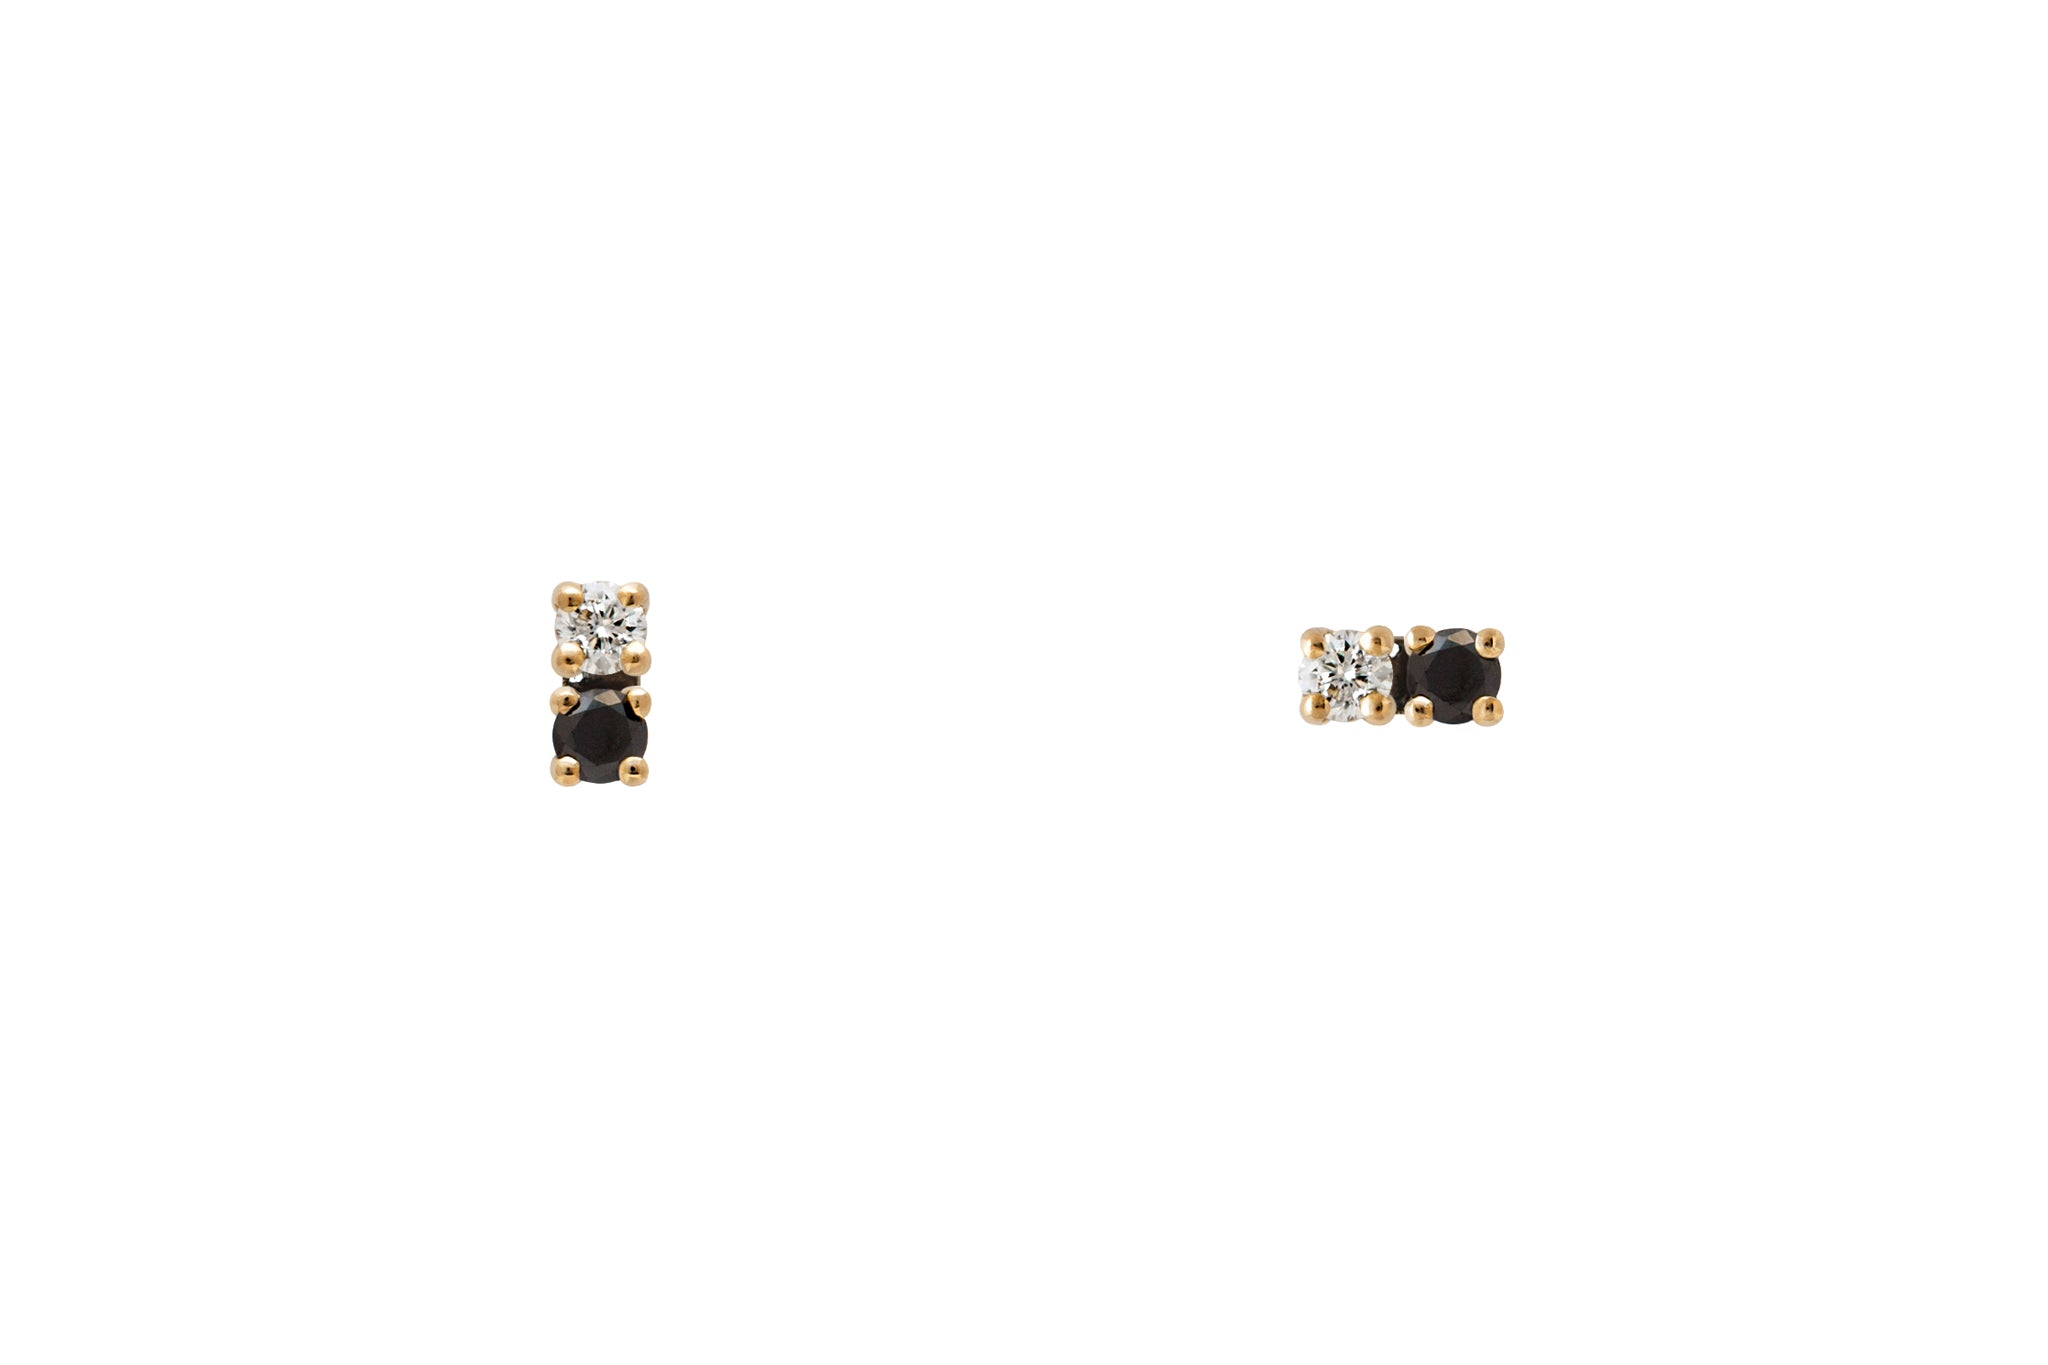 Black and White Duo Diamond Stud Earrings